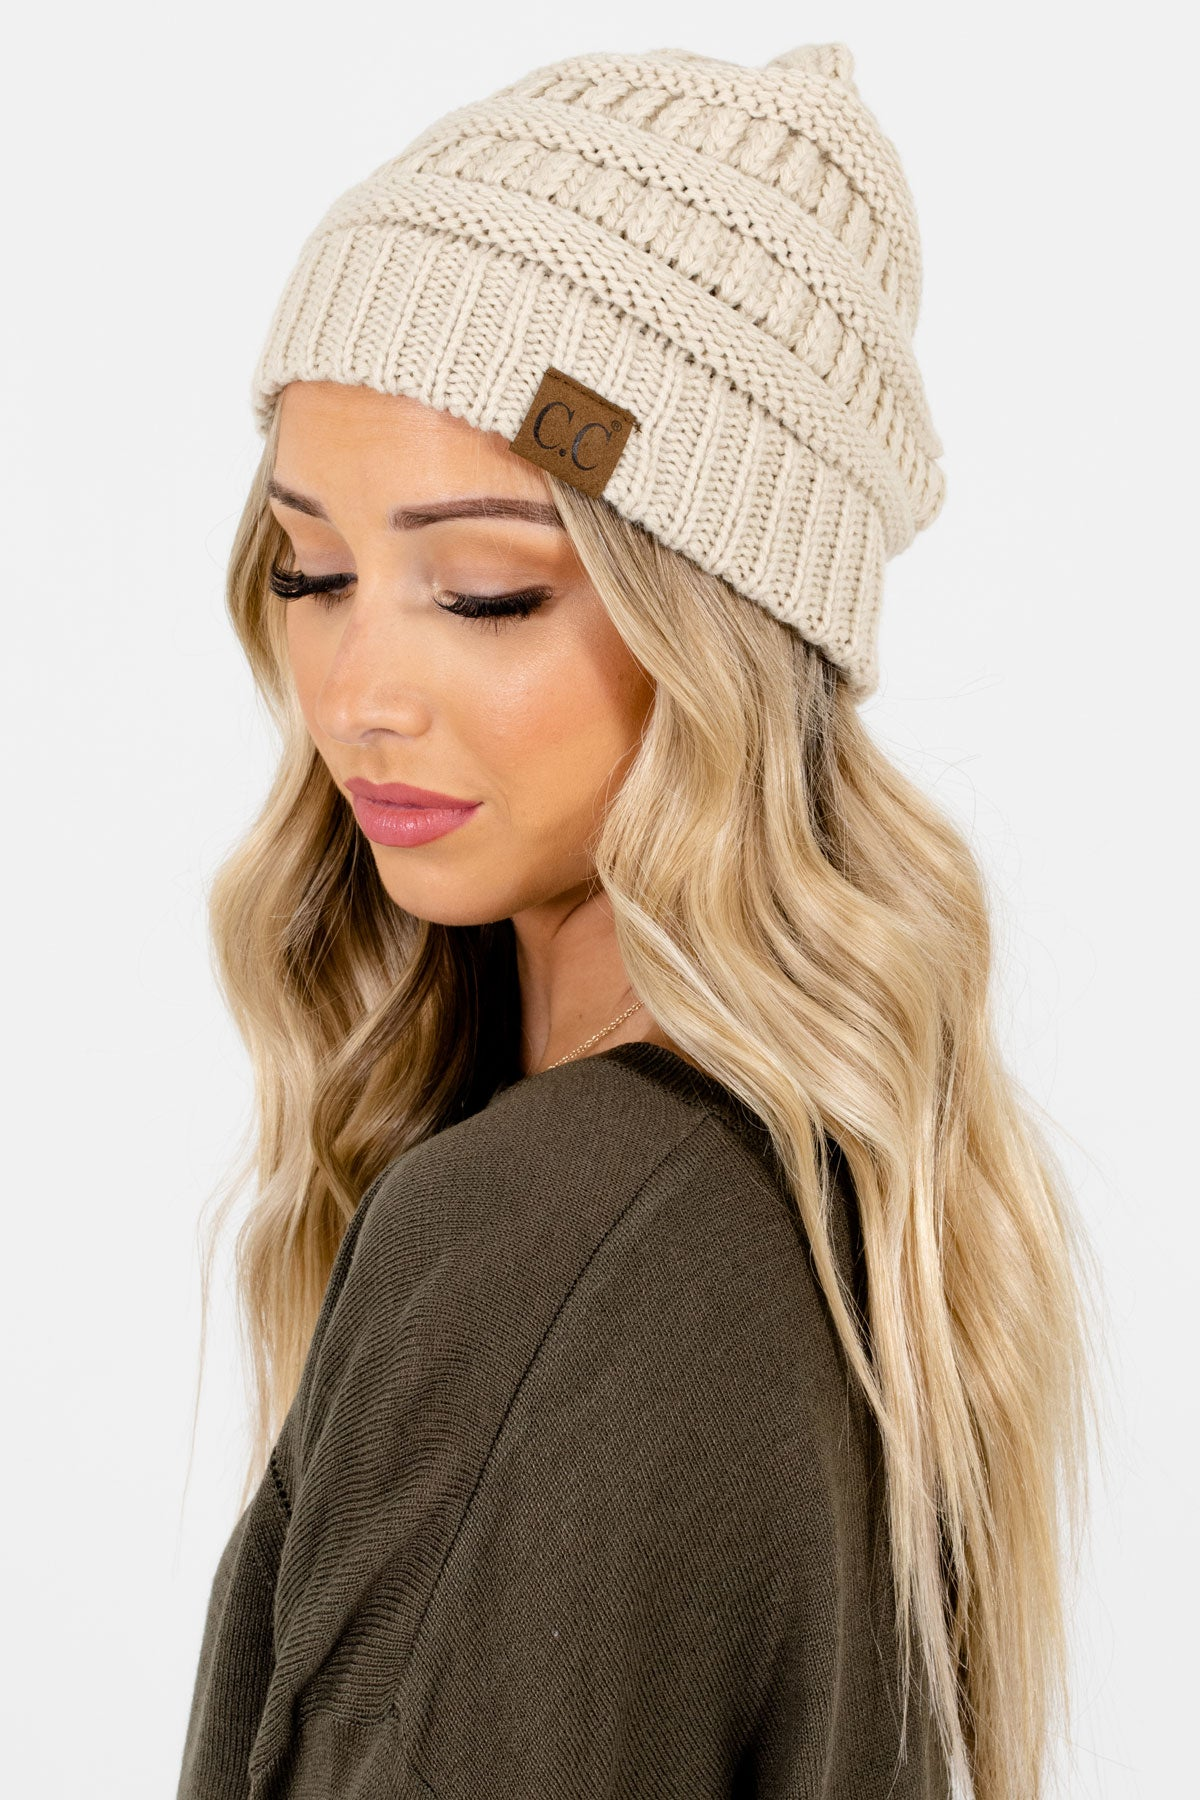 Cream High-Quality Knit Boutique Beanies for Women